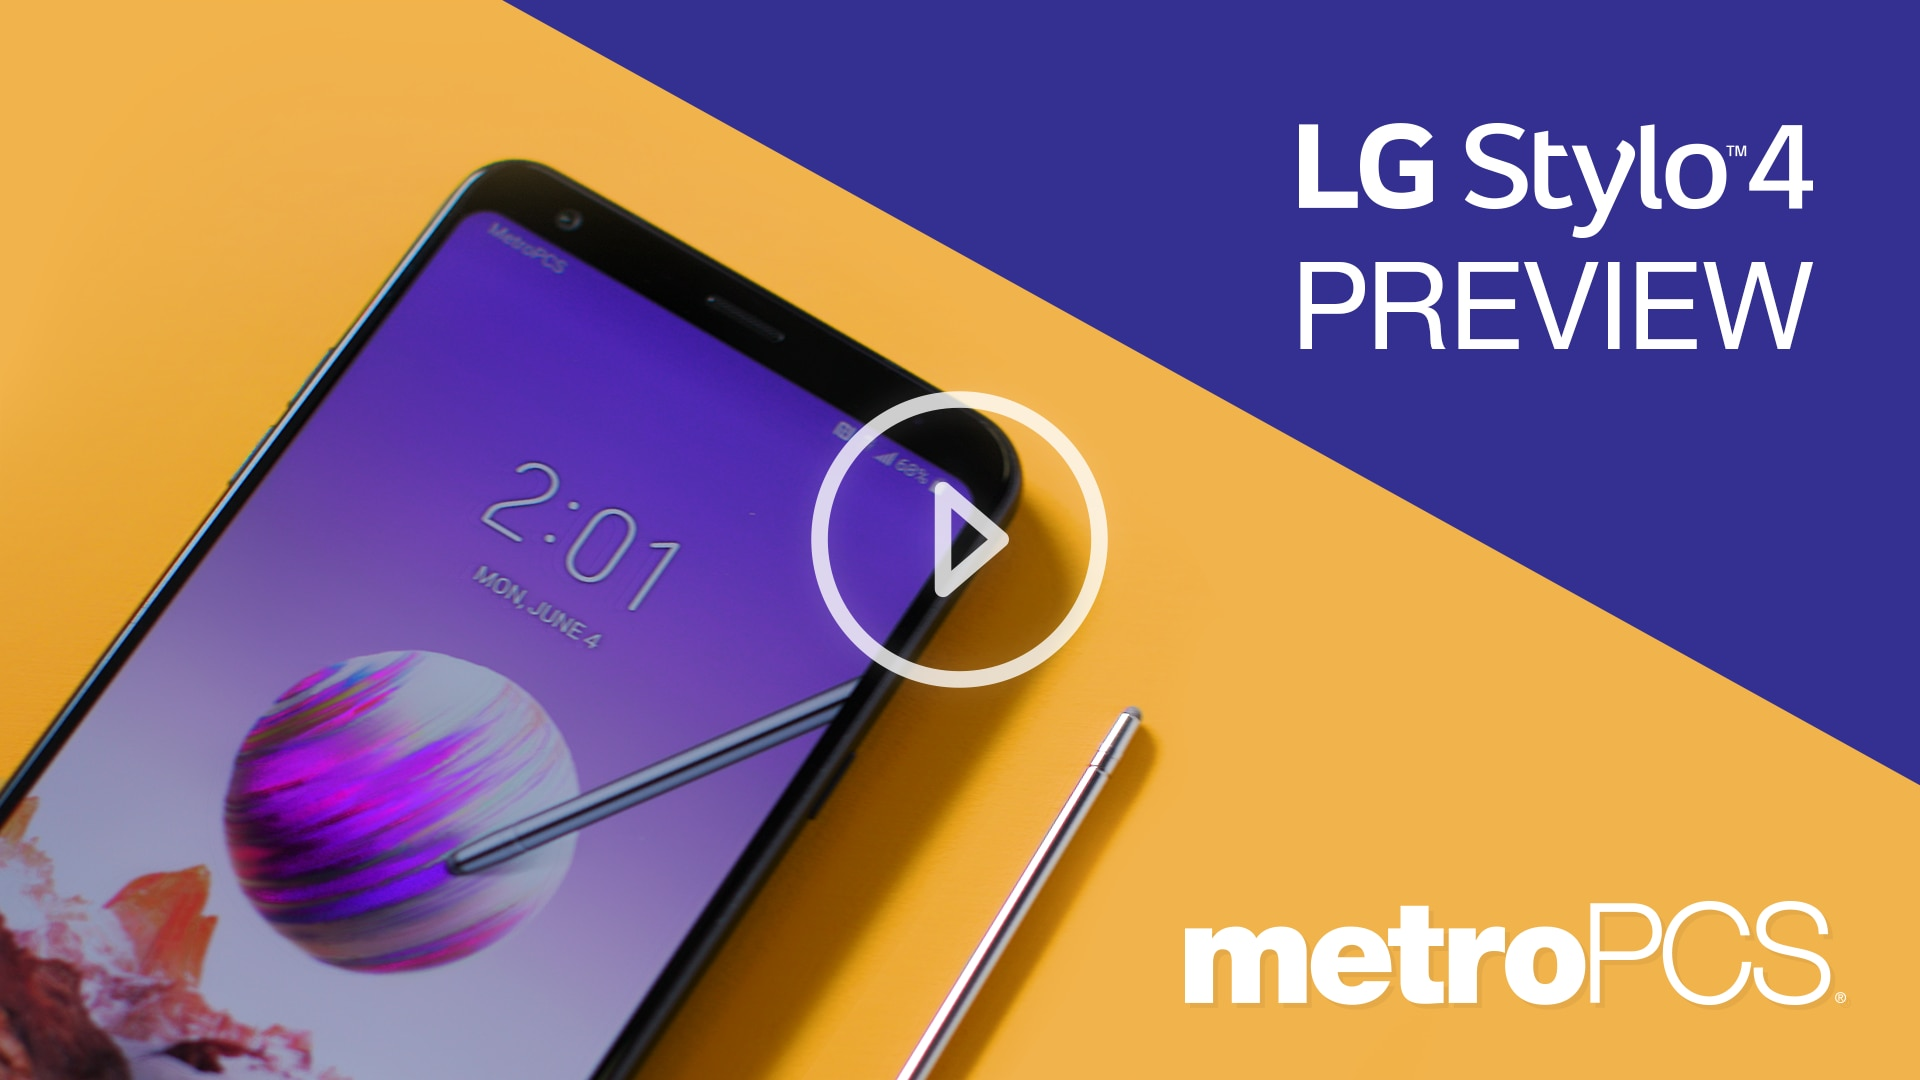 LG Stylo 4 Phone - Prices, Specs and More | Metro® by T-Mobile